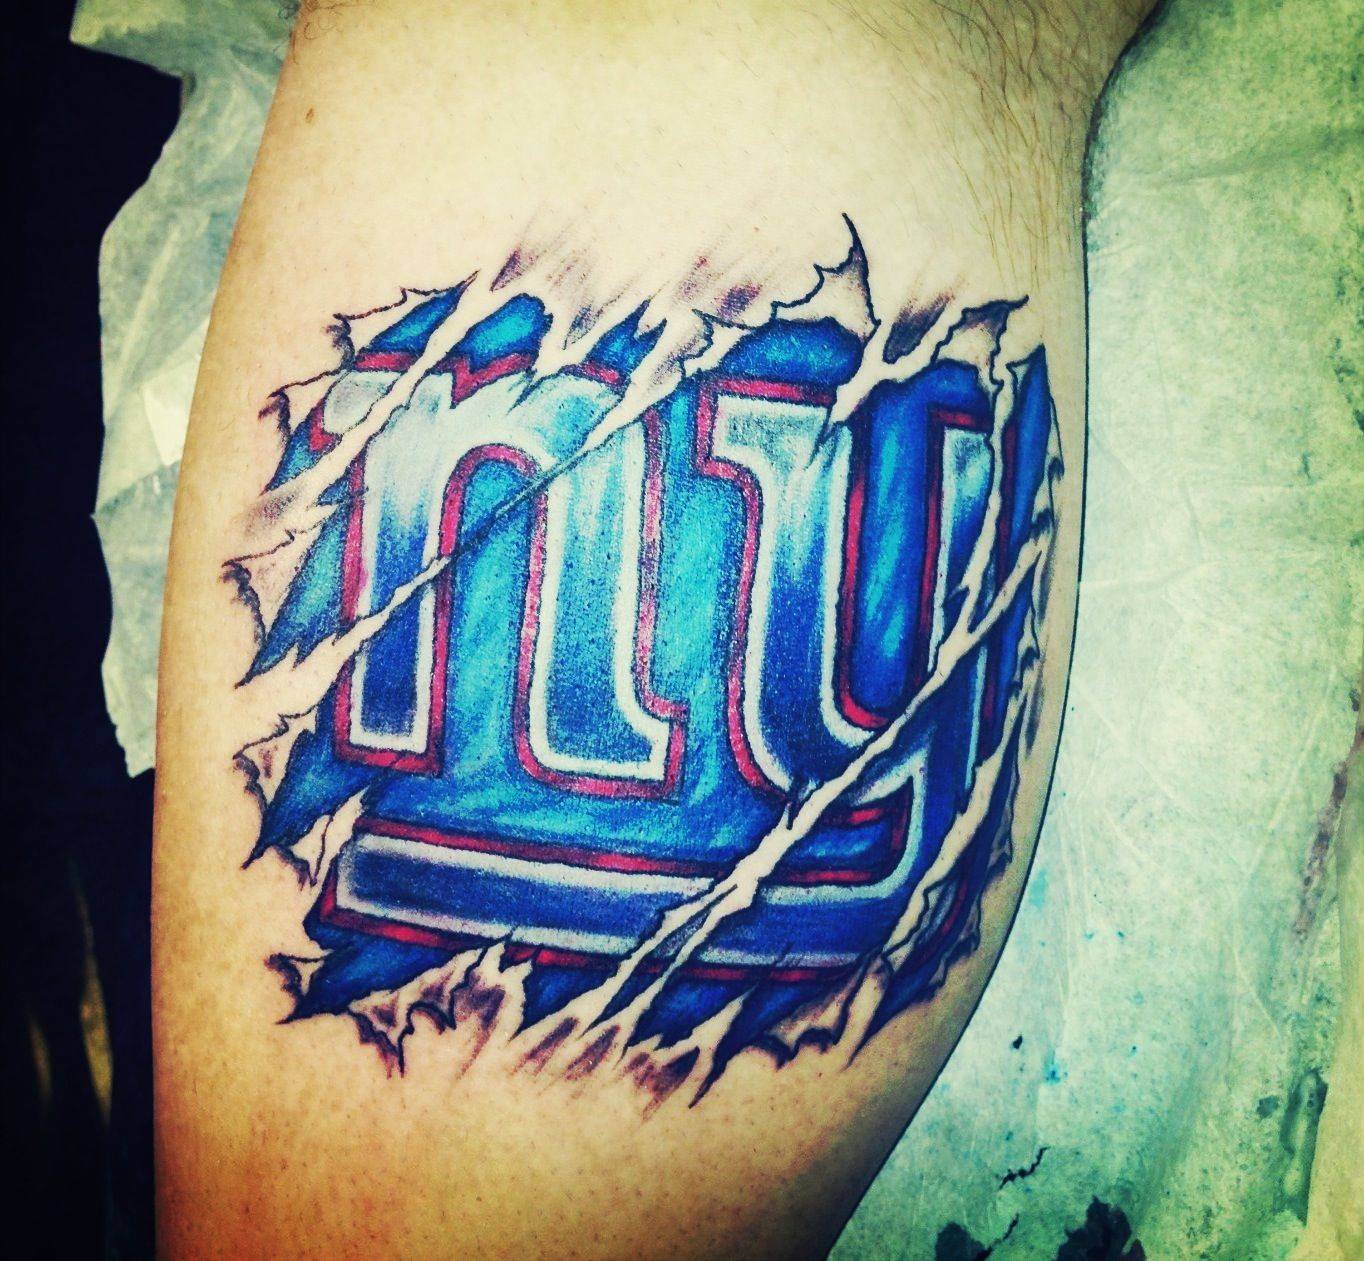 Giants Tattoo Bleed Blue Body Art New York Giants Logo